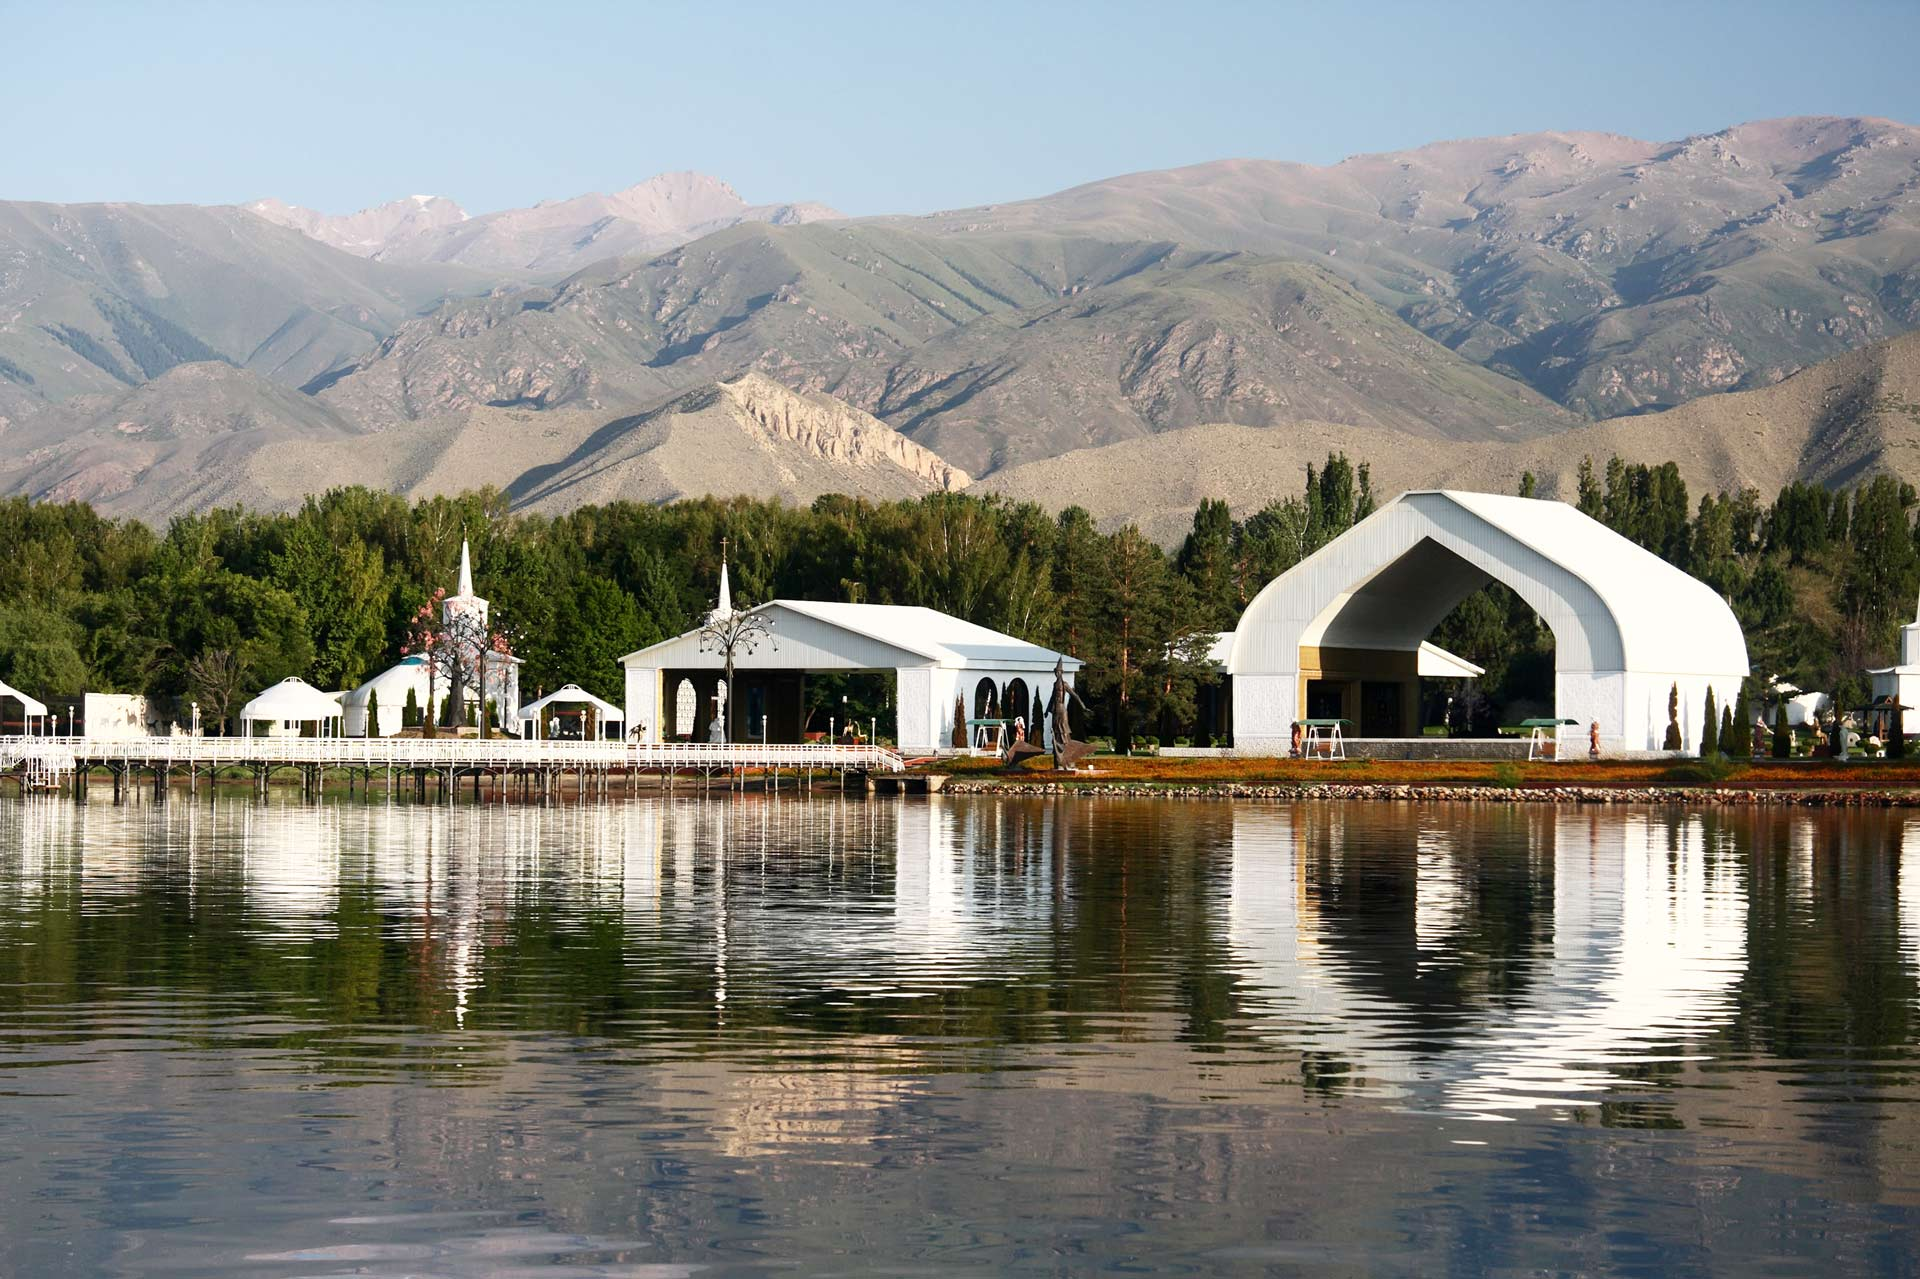 Architectural complex on the bank of mountain Lake Issyk-kul, Kyrgyzstan